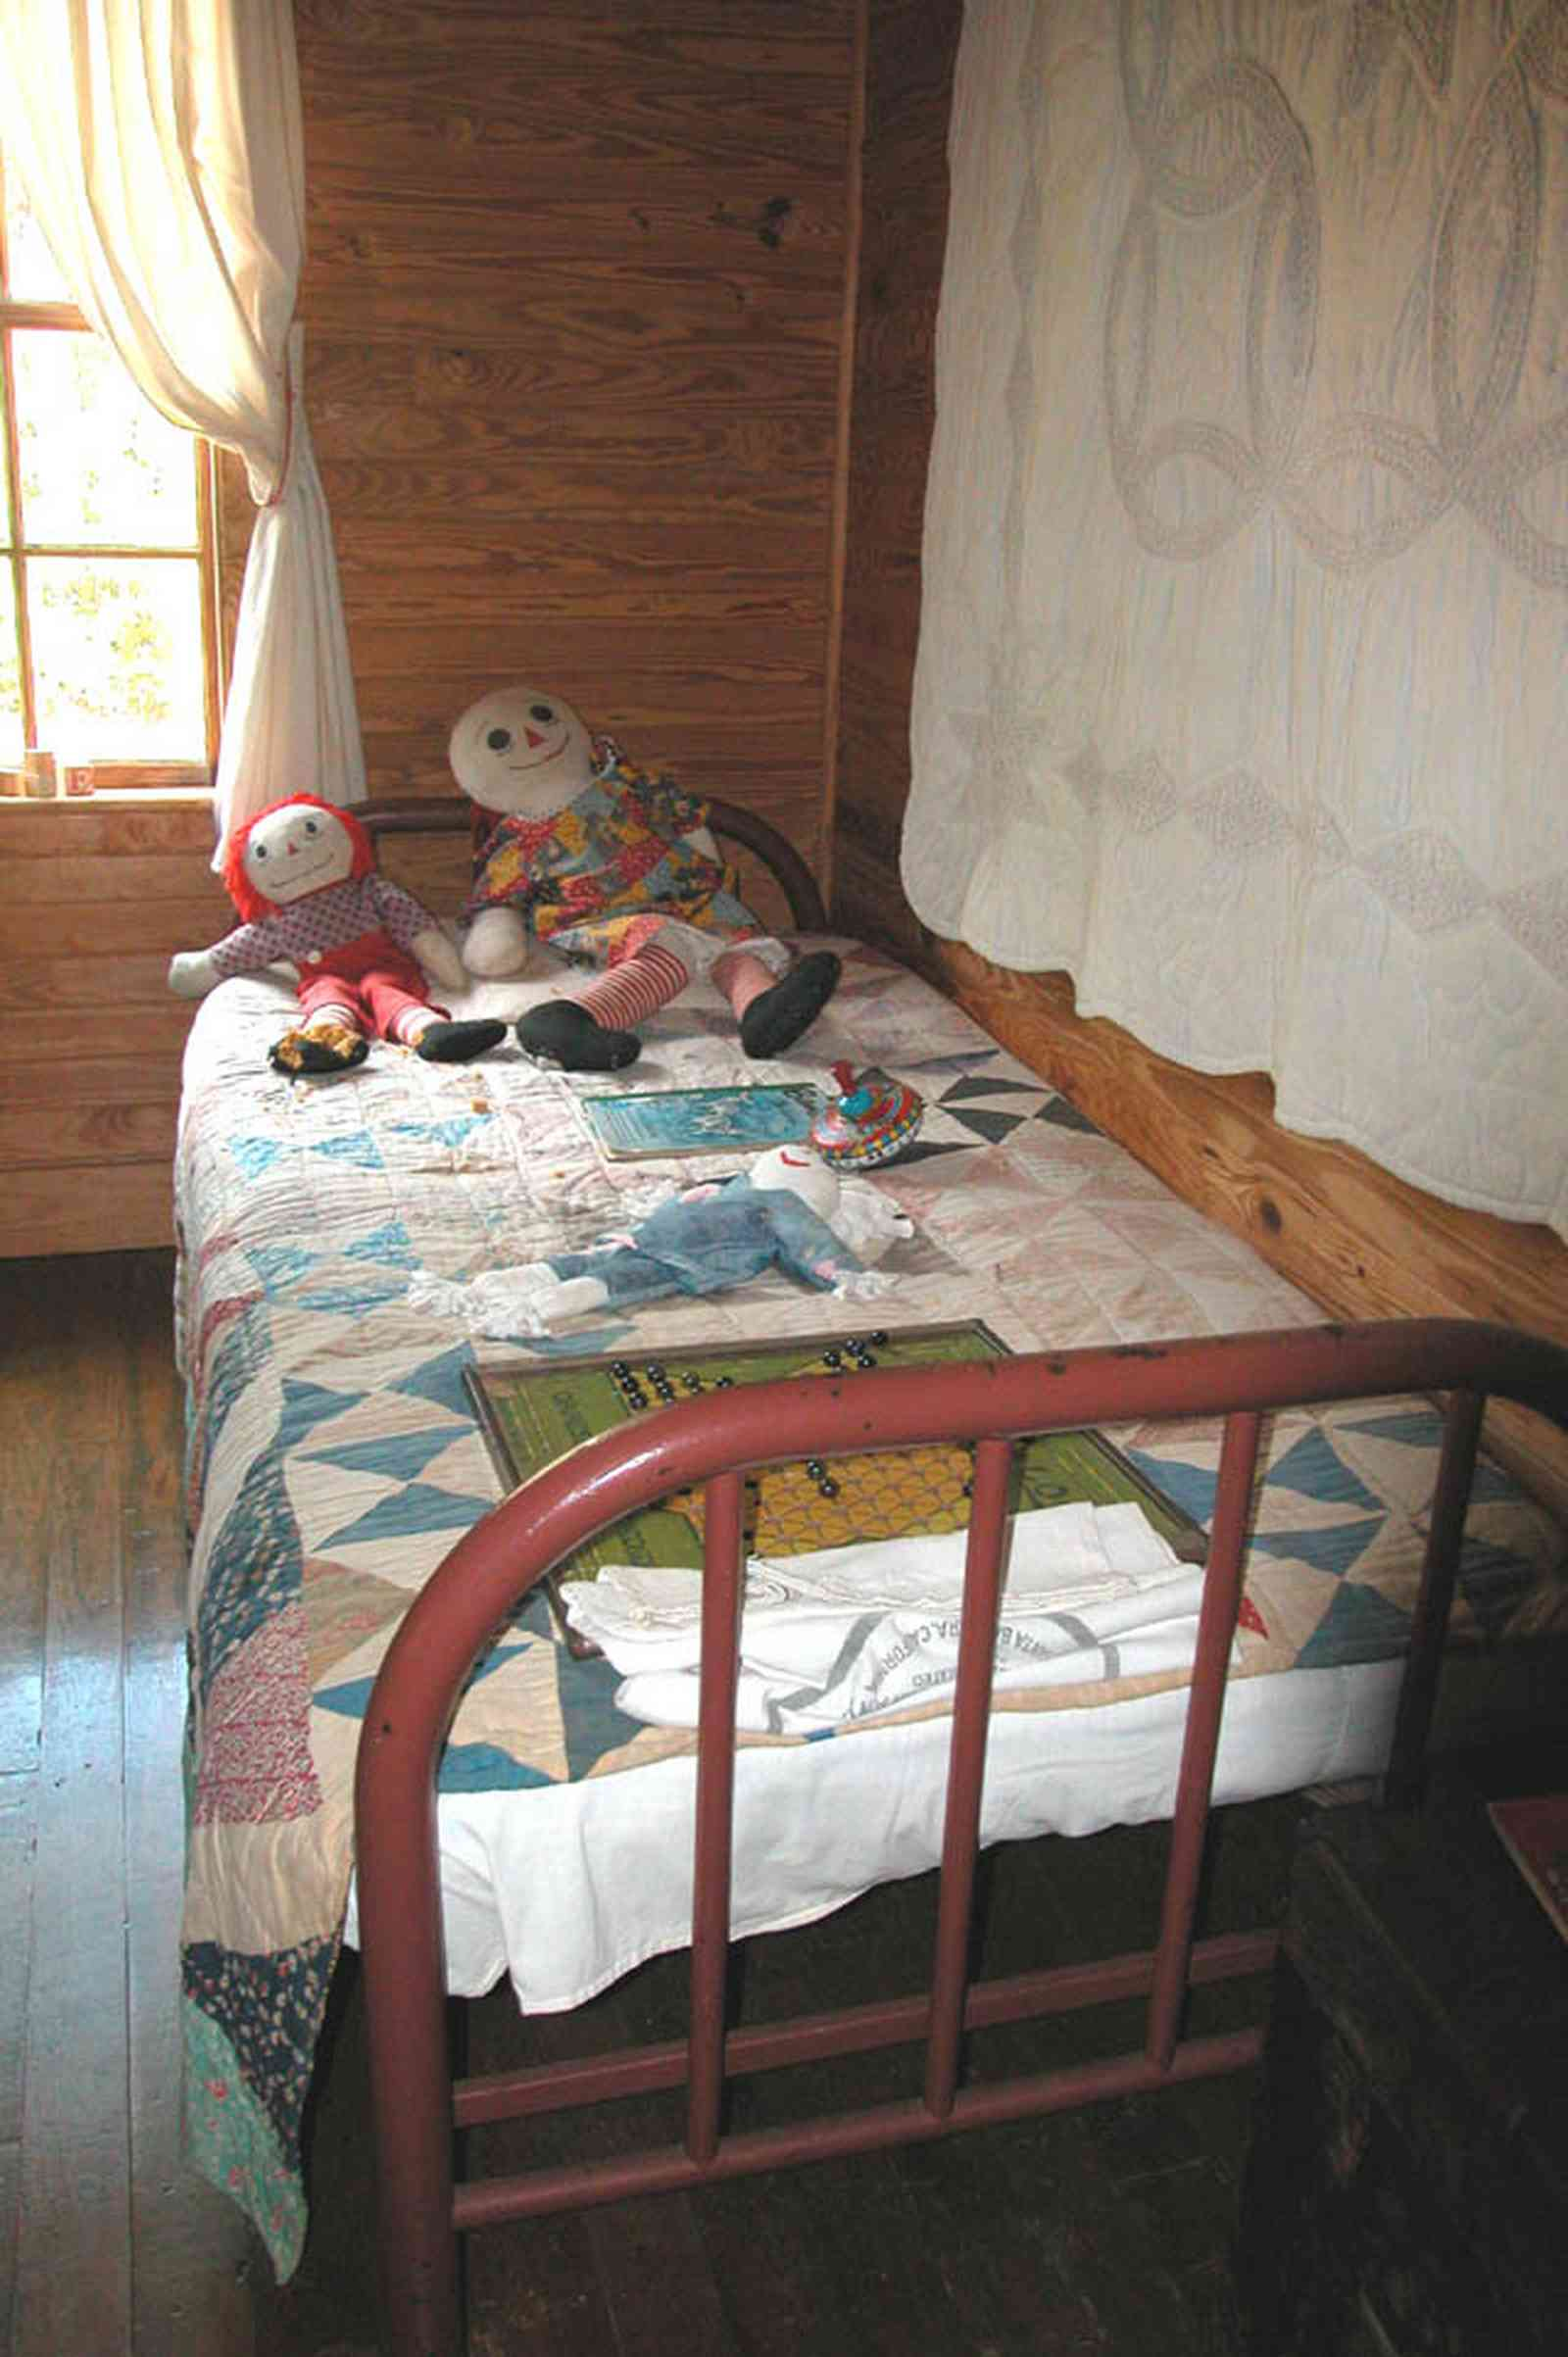 Cantonment:-Roy-Hyatt-Environmental-Center-Dog-Trot-House_10.jpg:  iron bed, quilt, ragdoll, bedroom, wooden walls, wood floor, rocking chair